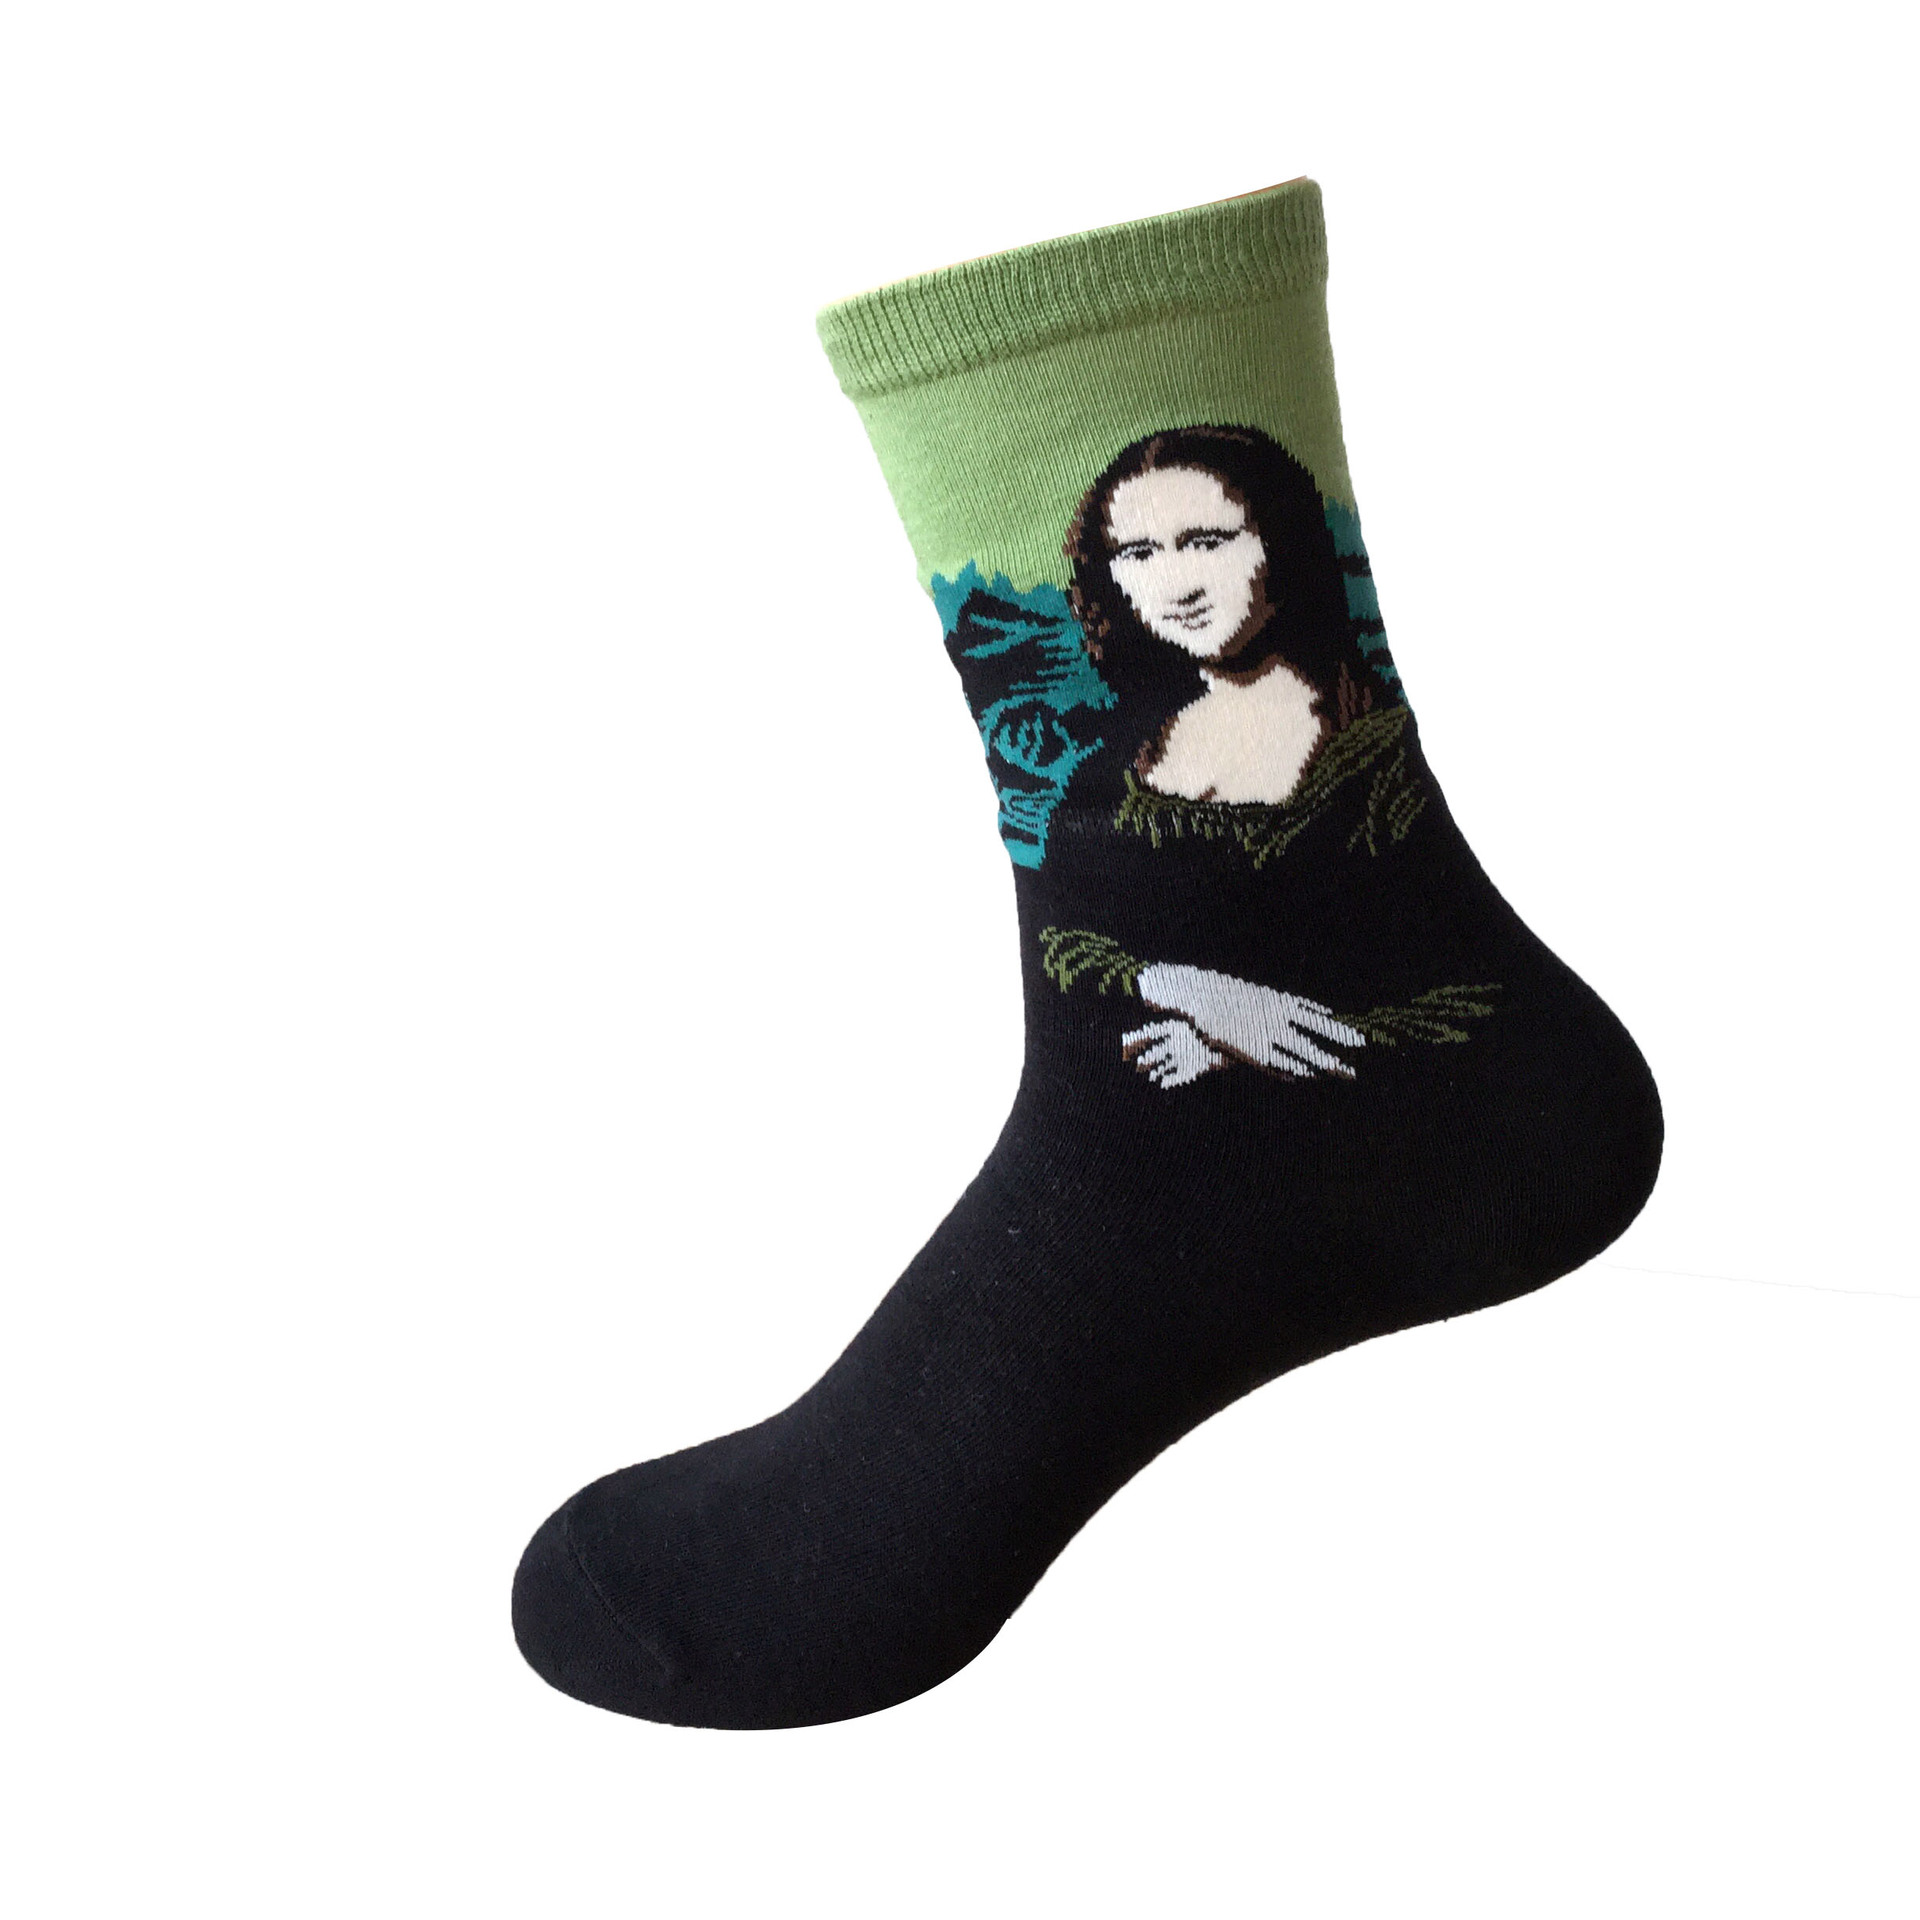 NEW Fashion <font><b>3D</b></font> <font><b>Retro</b></font> <font><b>Painting</b></font> <font><b>Art</b></font> <font><b>Socks</b></font> <font><b>Unisex</b></font> <font><b>Women</b></font> <font><b>Men</b></font> <font><b>Funny</b></font> Novelty Starry Night Vintage <font><b>Socks</b></font> image